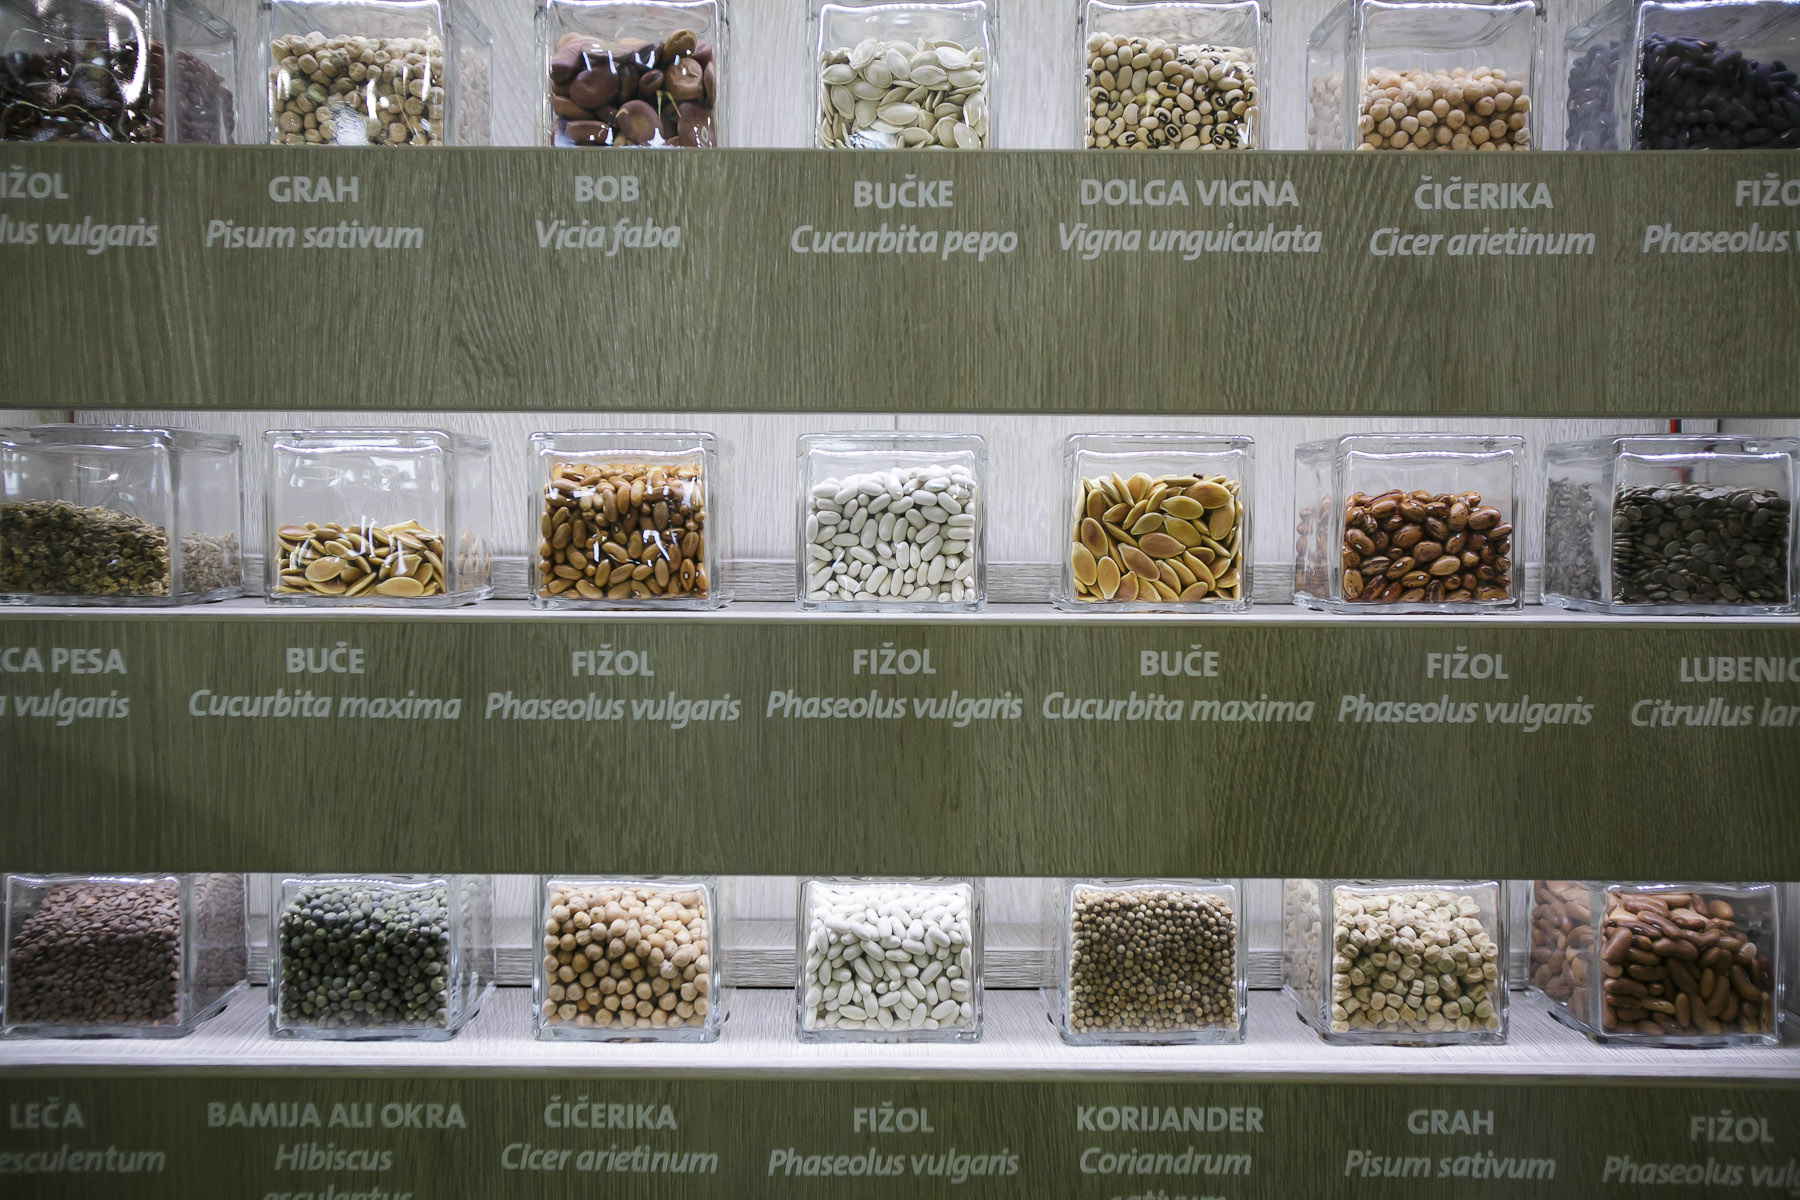 Vegetable seeds are exhibited at the 53rd agricultural fair Agra in Gornja Radgona, Slovenia, Aug. 22, 2015, following an international conference on GMOs in Europe held the day before.